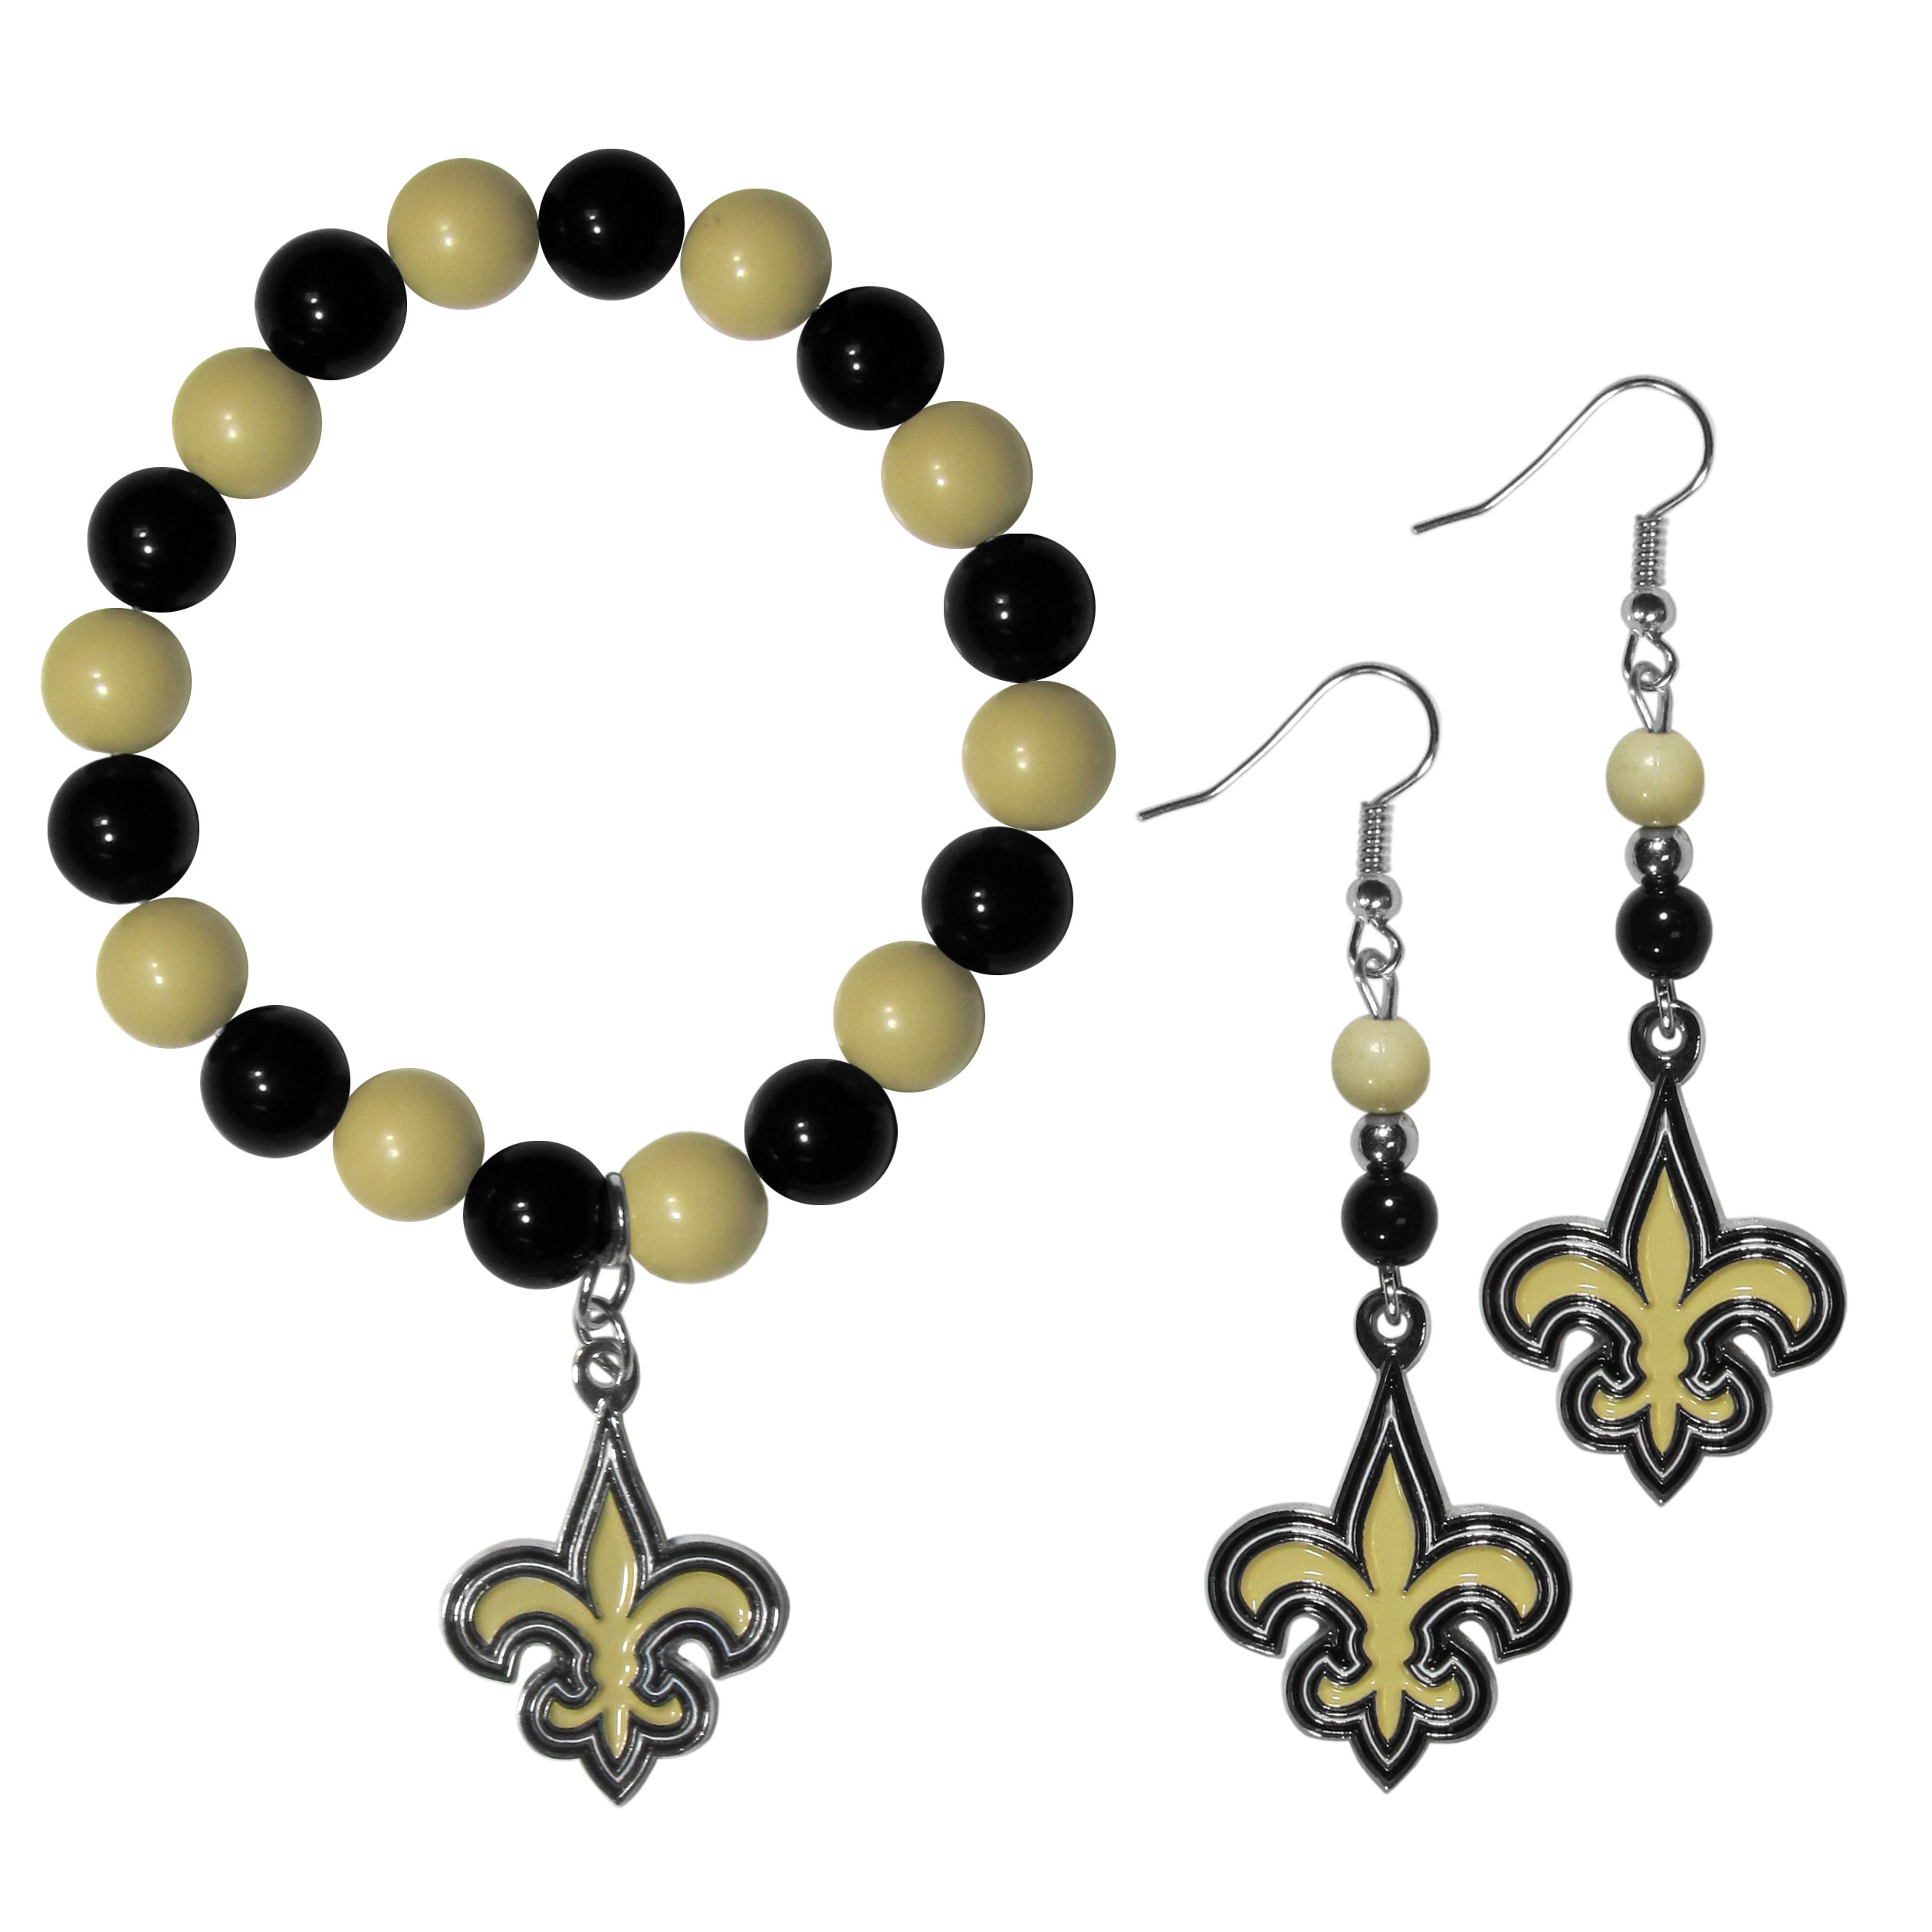 New Orleans Saints Fan Bead Earrings and Bracelet Set - This fun and colorful New Orleans Saints fan bead jewelry set is fun and casual with eye-catching beads in bright team colors. The fashionable dangle earrings feature a team colored beads that drop down to a carved and enameled charm. The stretch bracelet has larger matching beads that make a striking statement and have a matching team charm. These sassy yet sporty jewelry pieces make a perfect gift for any female fan. Spice up your game-day outfit with these fun colorful earrings and bracelet that are also cute enough for any day.